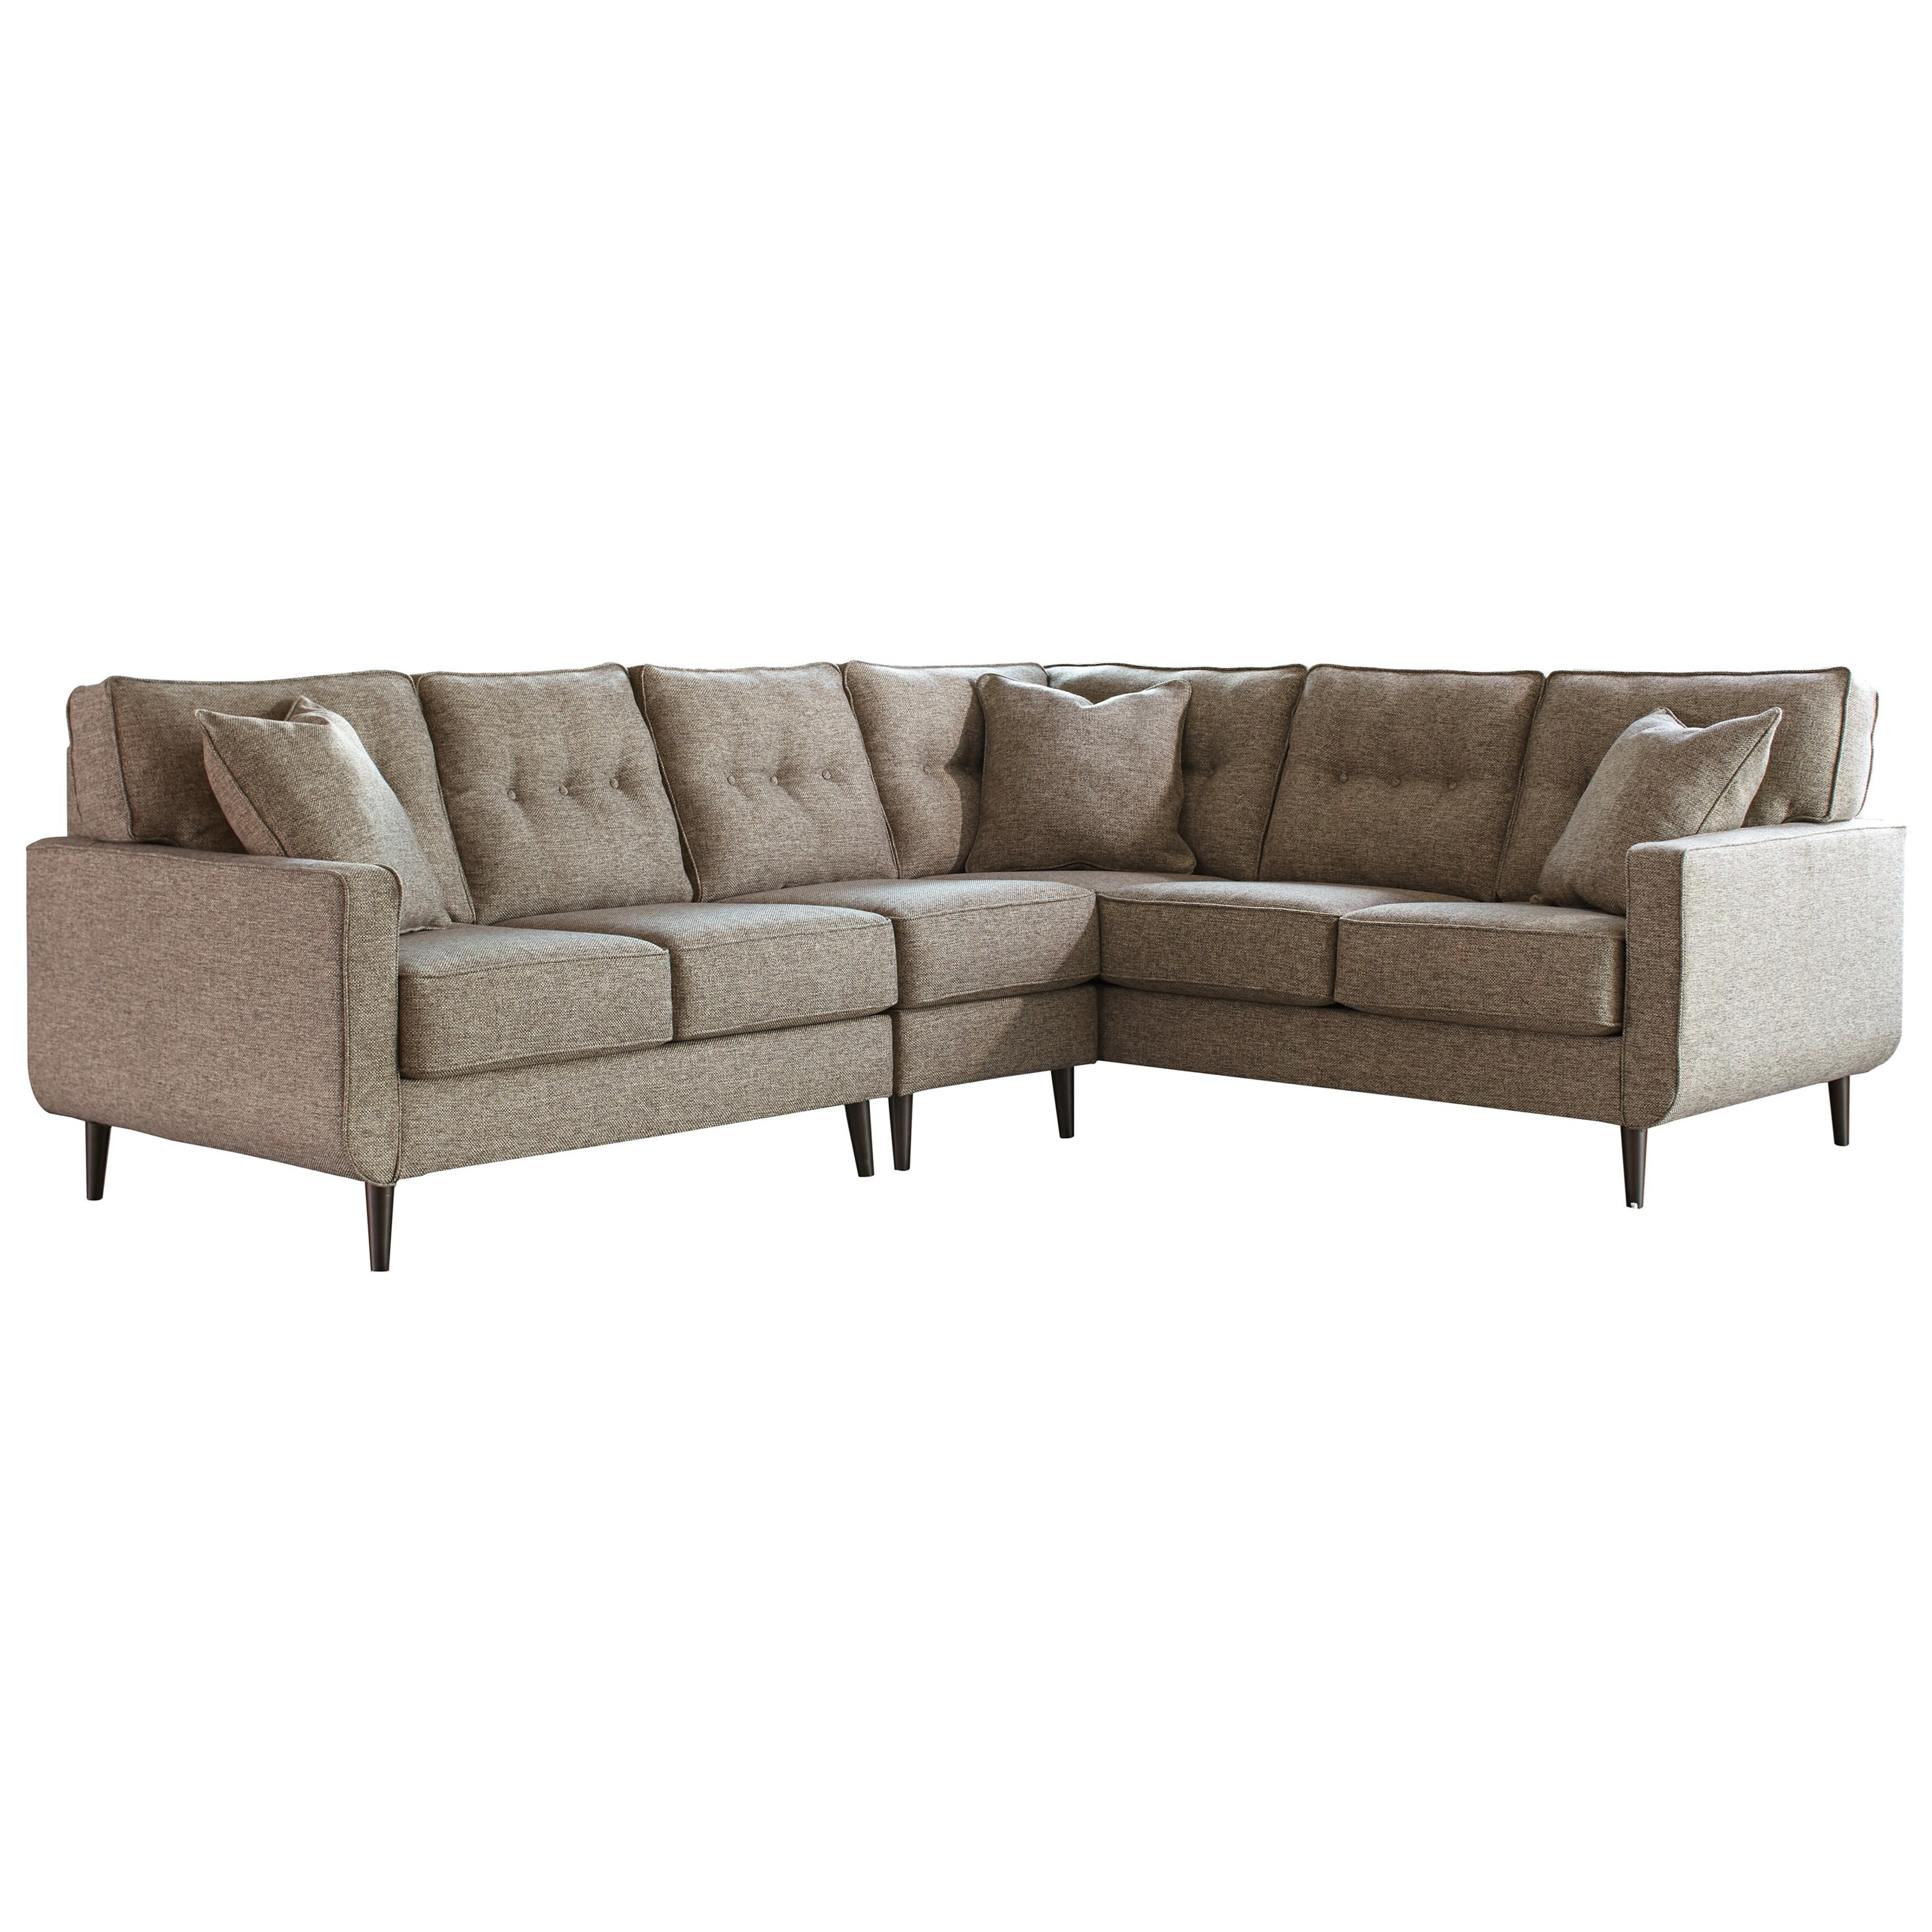 Dahra 3-Piece Sectional by Benchcraft at Johnny Janosik